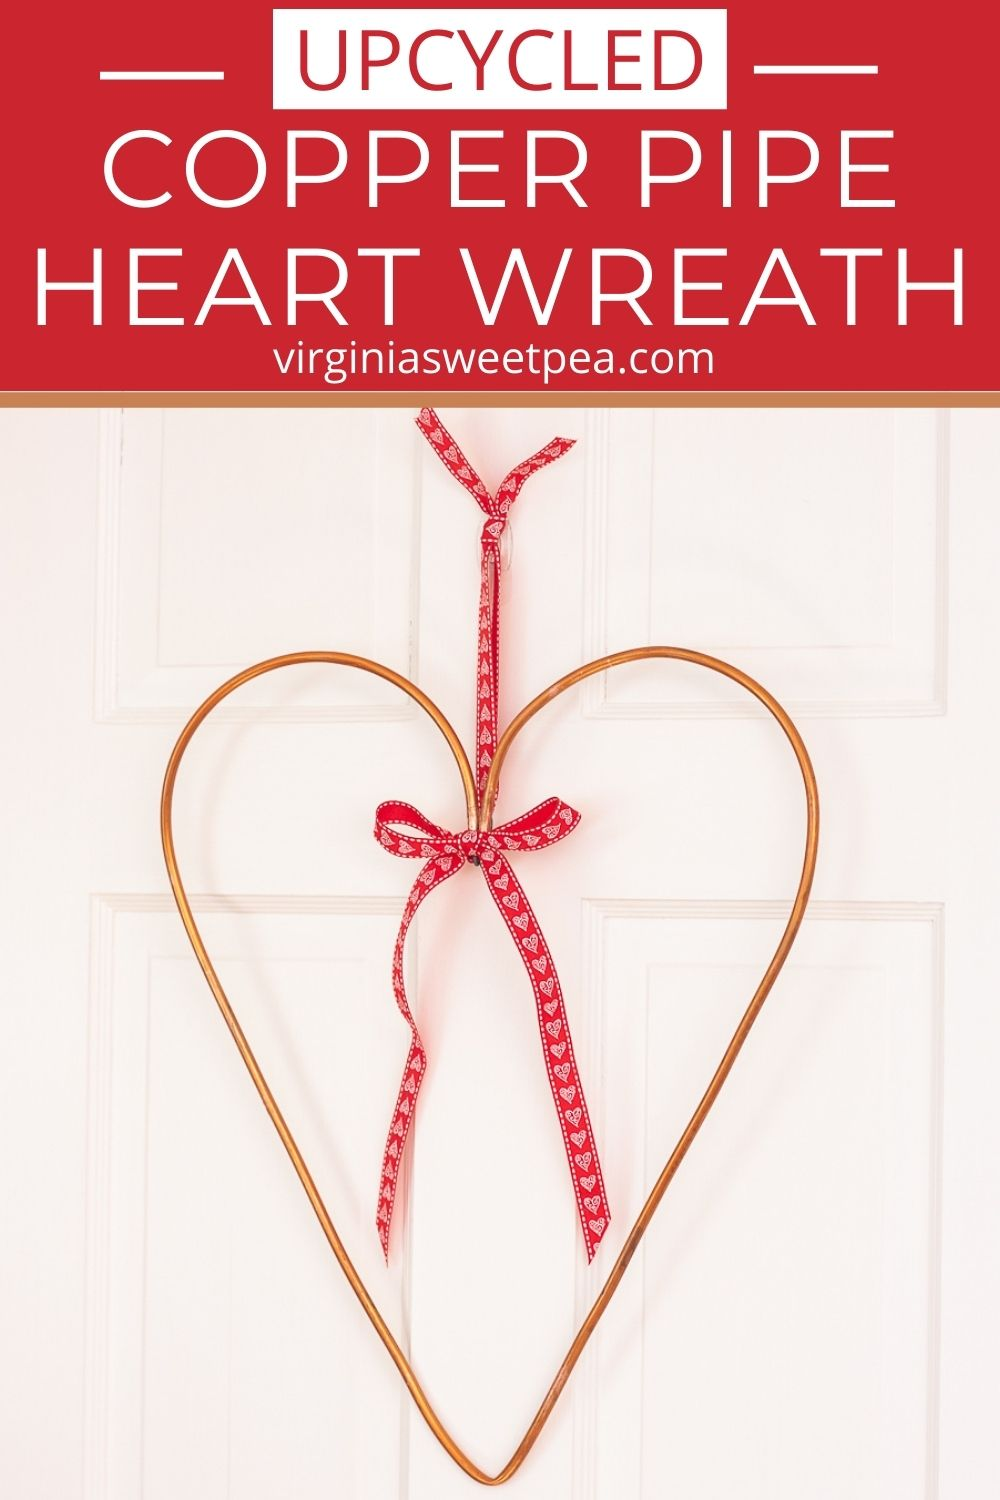 A copper water wine from a refrigerator was used to make this upcycled wreath.  Use similar copper pipe from the hardware store to make a copper pipe heart wreath for your home.  The ribbon can be switched for different seasons.  This unique wreath is perfect to hang on a door, wall, over a mantel, or in a dorm room. via @spaula